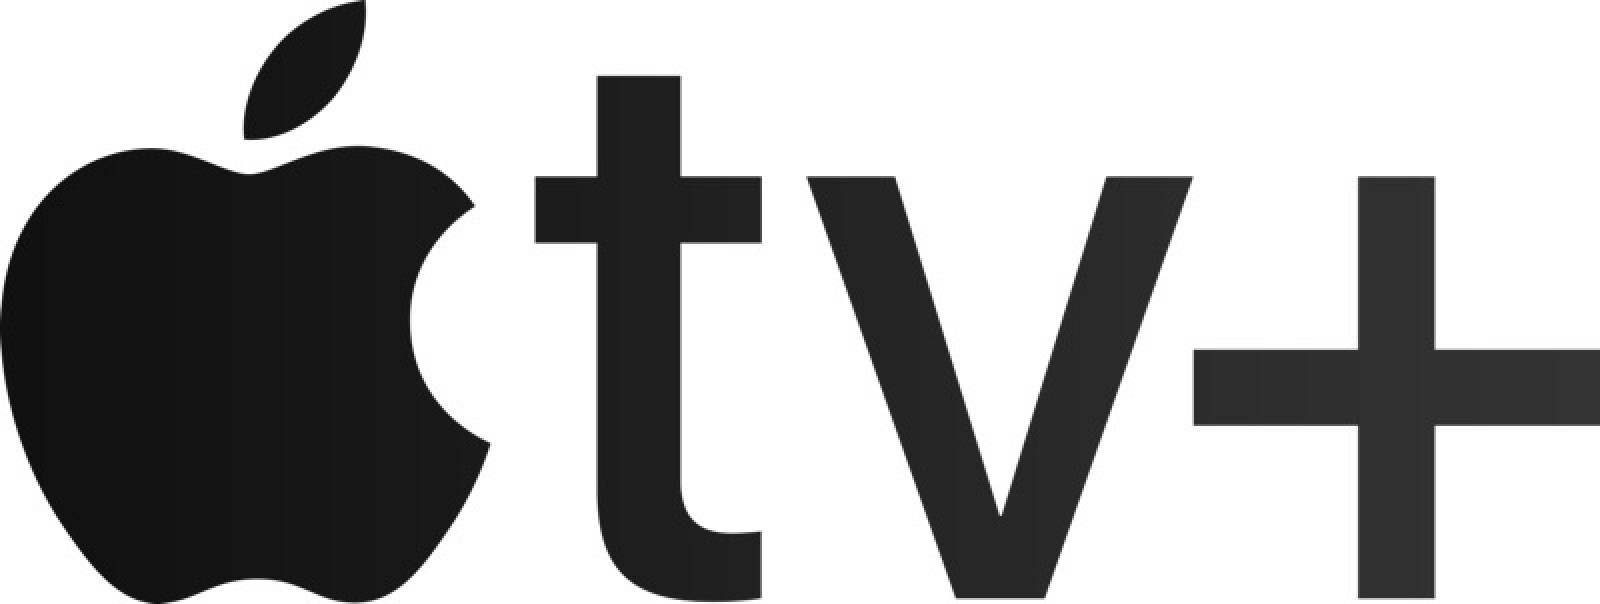 photo of Apple Disputes Goldman Sachs Analyst Report Claiming Free Year of Apple TV+ Will Impact Earnings image